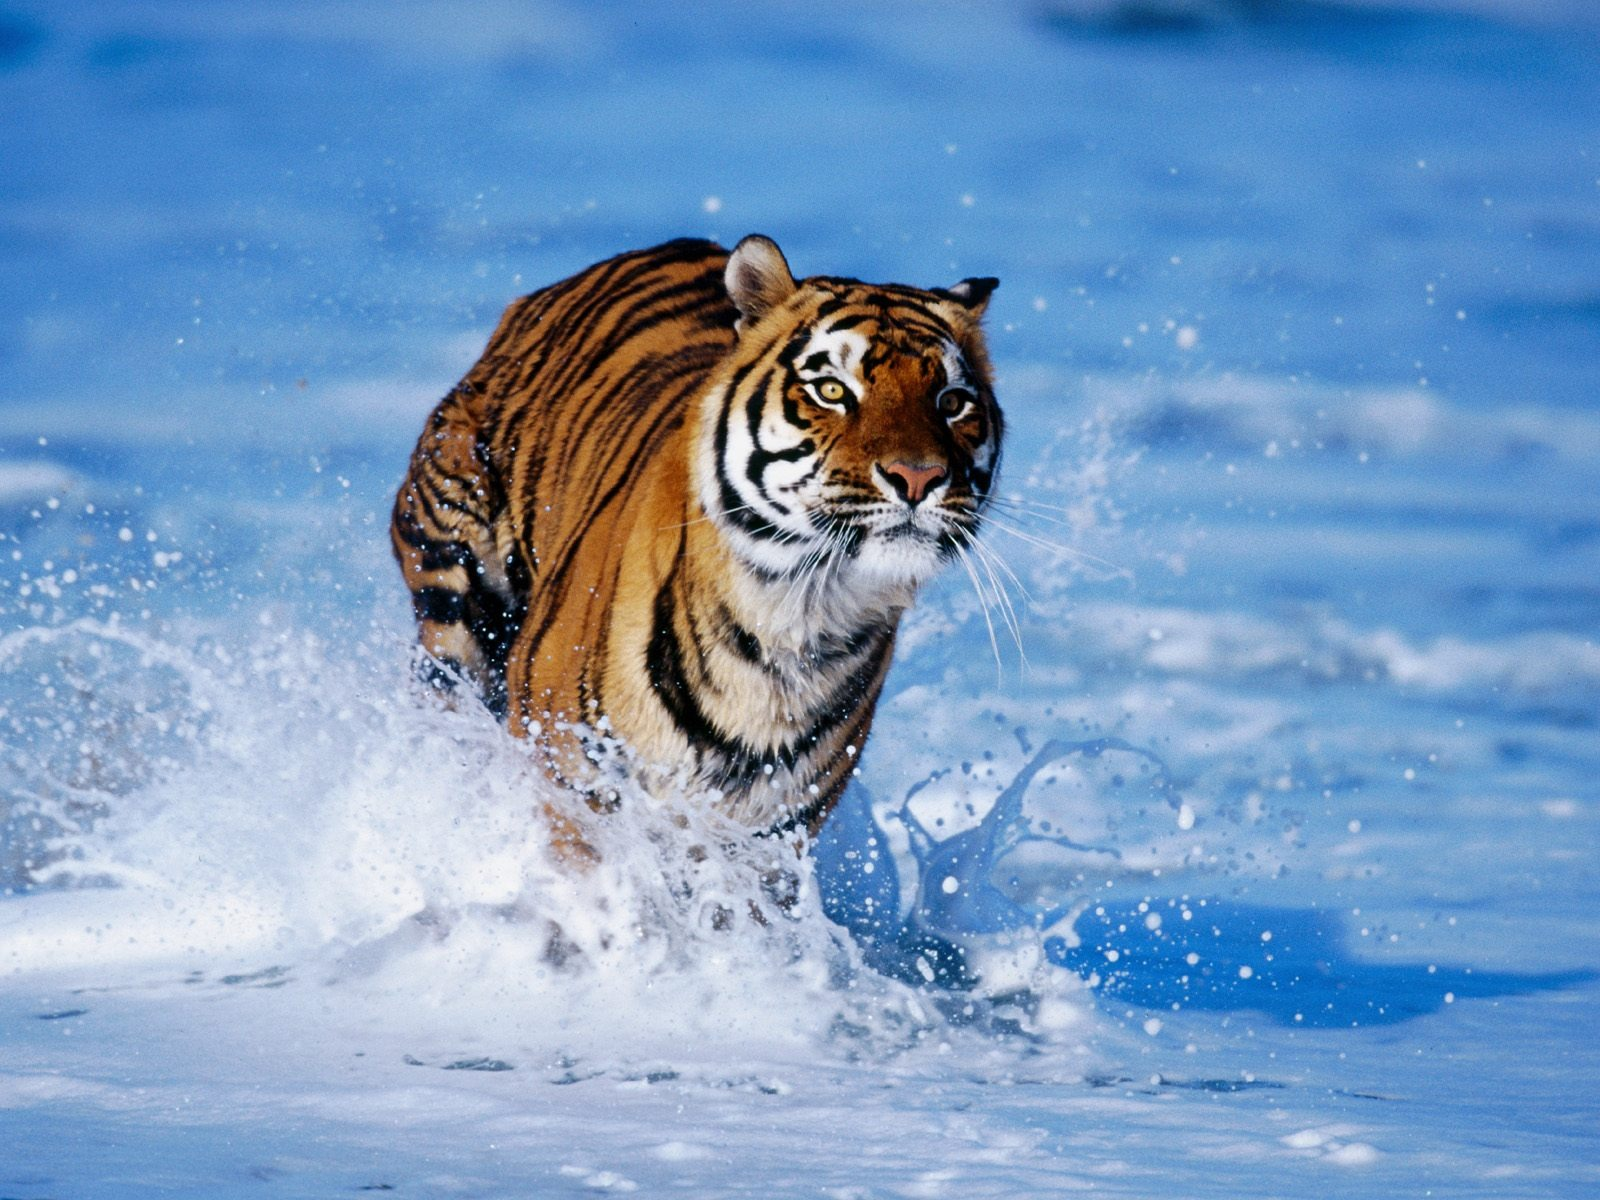 bengal tiger wallpaper tigers animals wallpapers in jpg format for